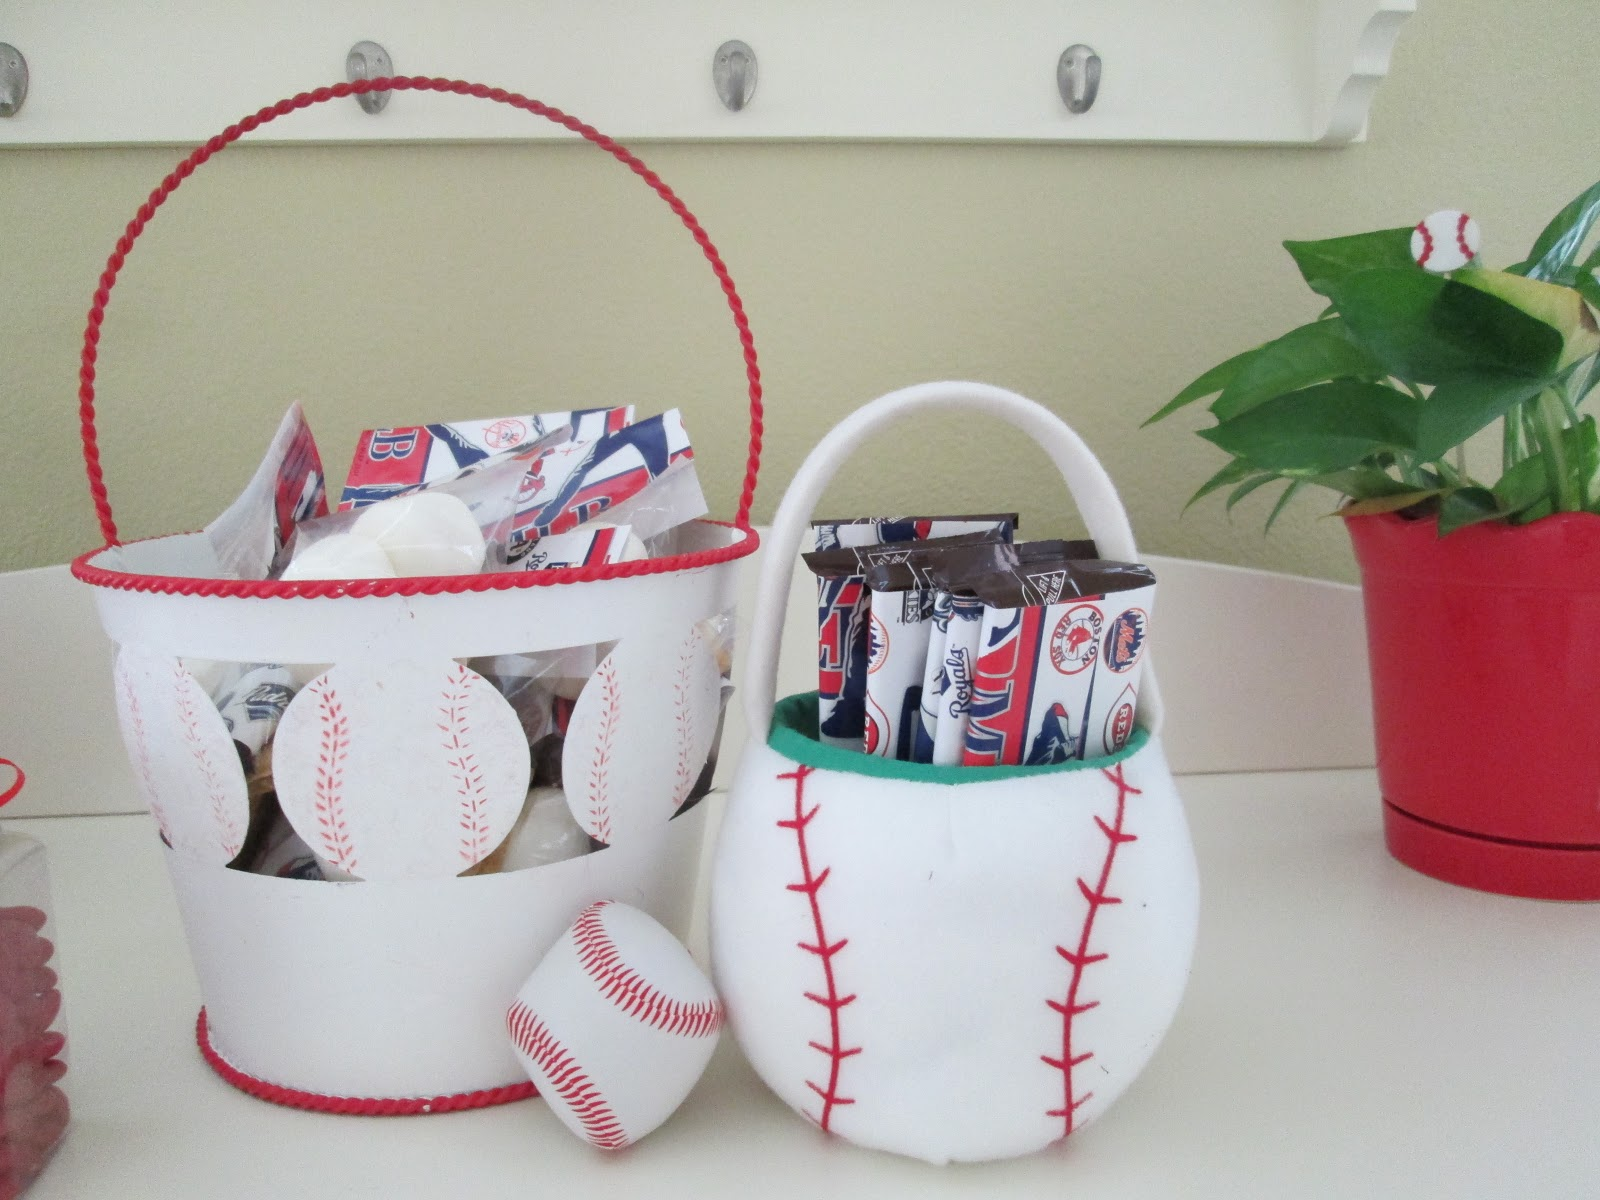 Roommom27 Baseball Decorations For Opening Day. Decorative Strap Hinges. Room Darkening Cellular Shades. Room Store Furniture. Theatre Room Seating. Cheap Living Room Sets Under 200. Decorative Curtains. Rooms For Rent In Anaheim Ca. Utility Room Storage